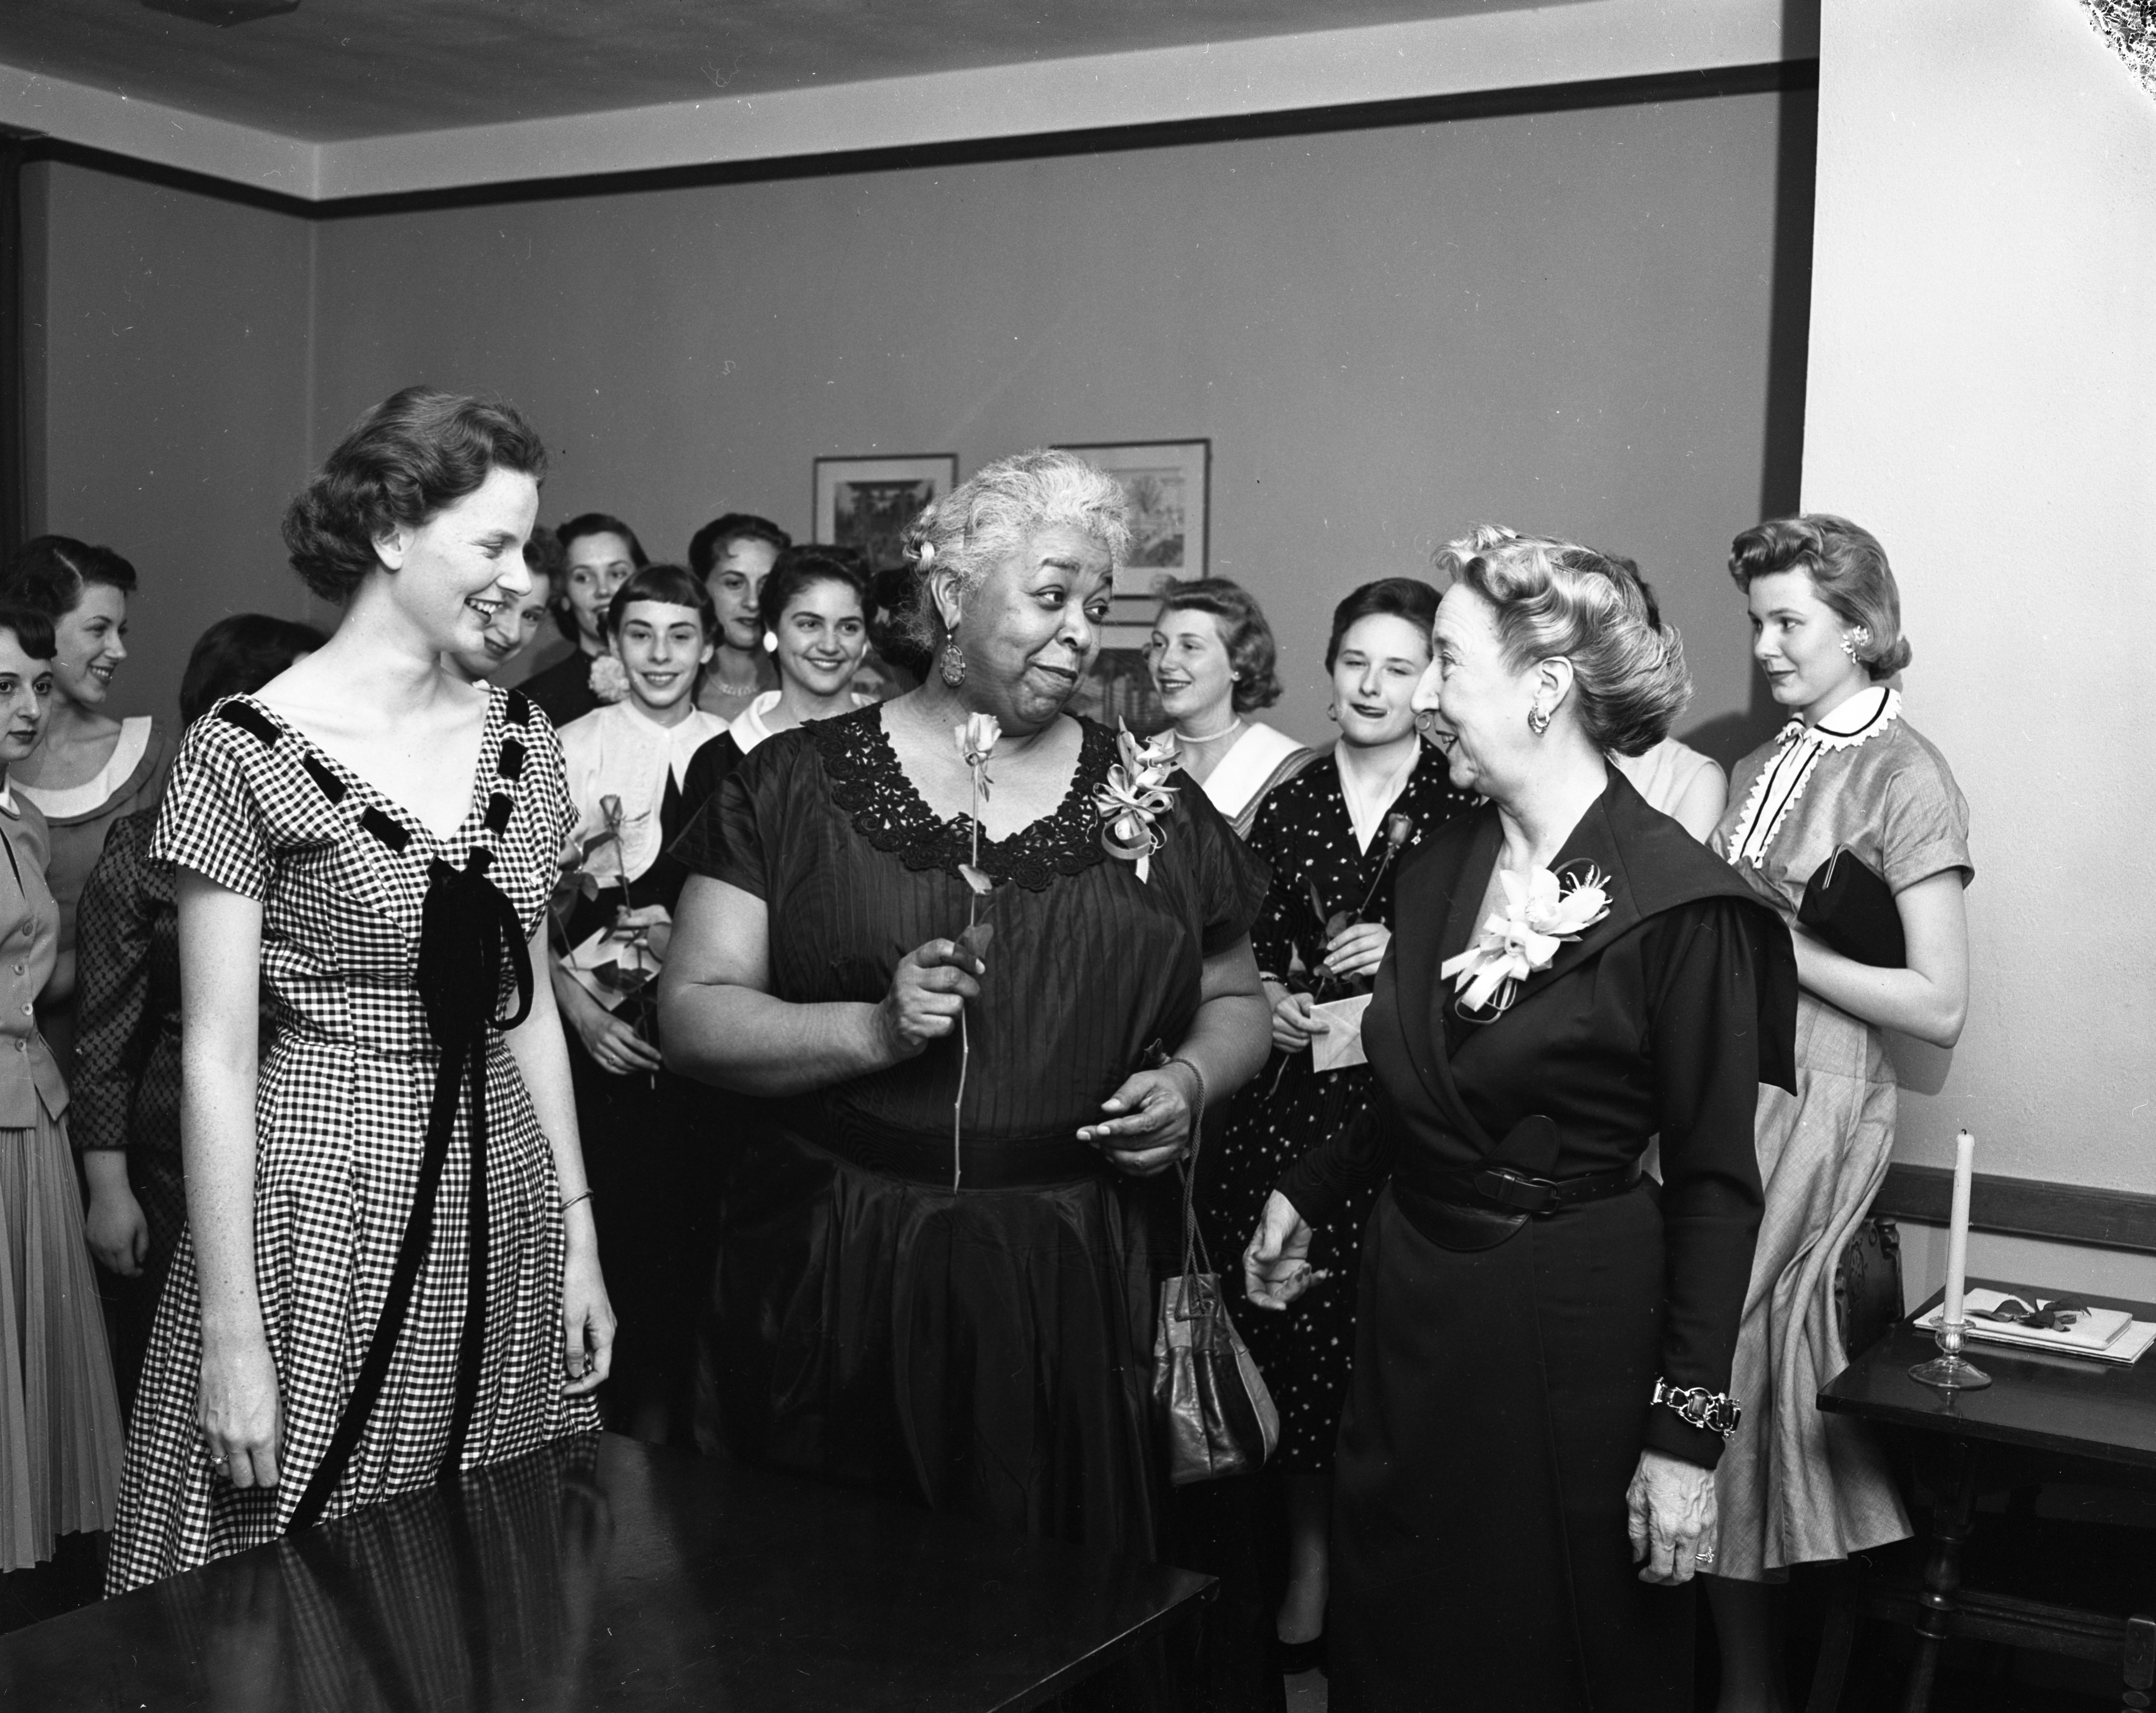 Actress Ethel Waters made honorary member of Zeta Phi Eta, May 1956 image